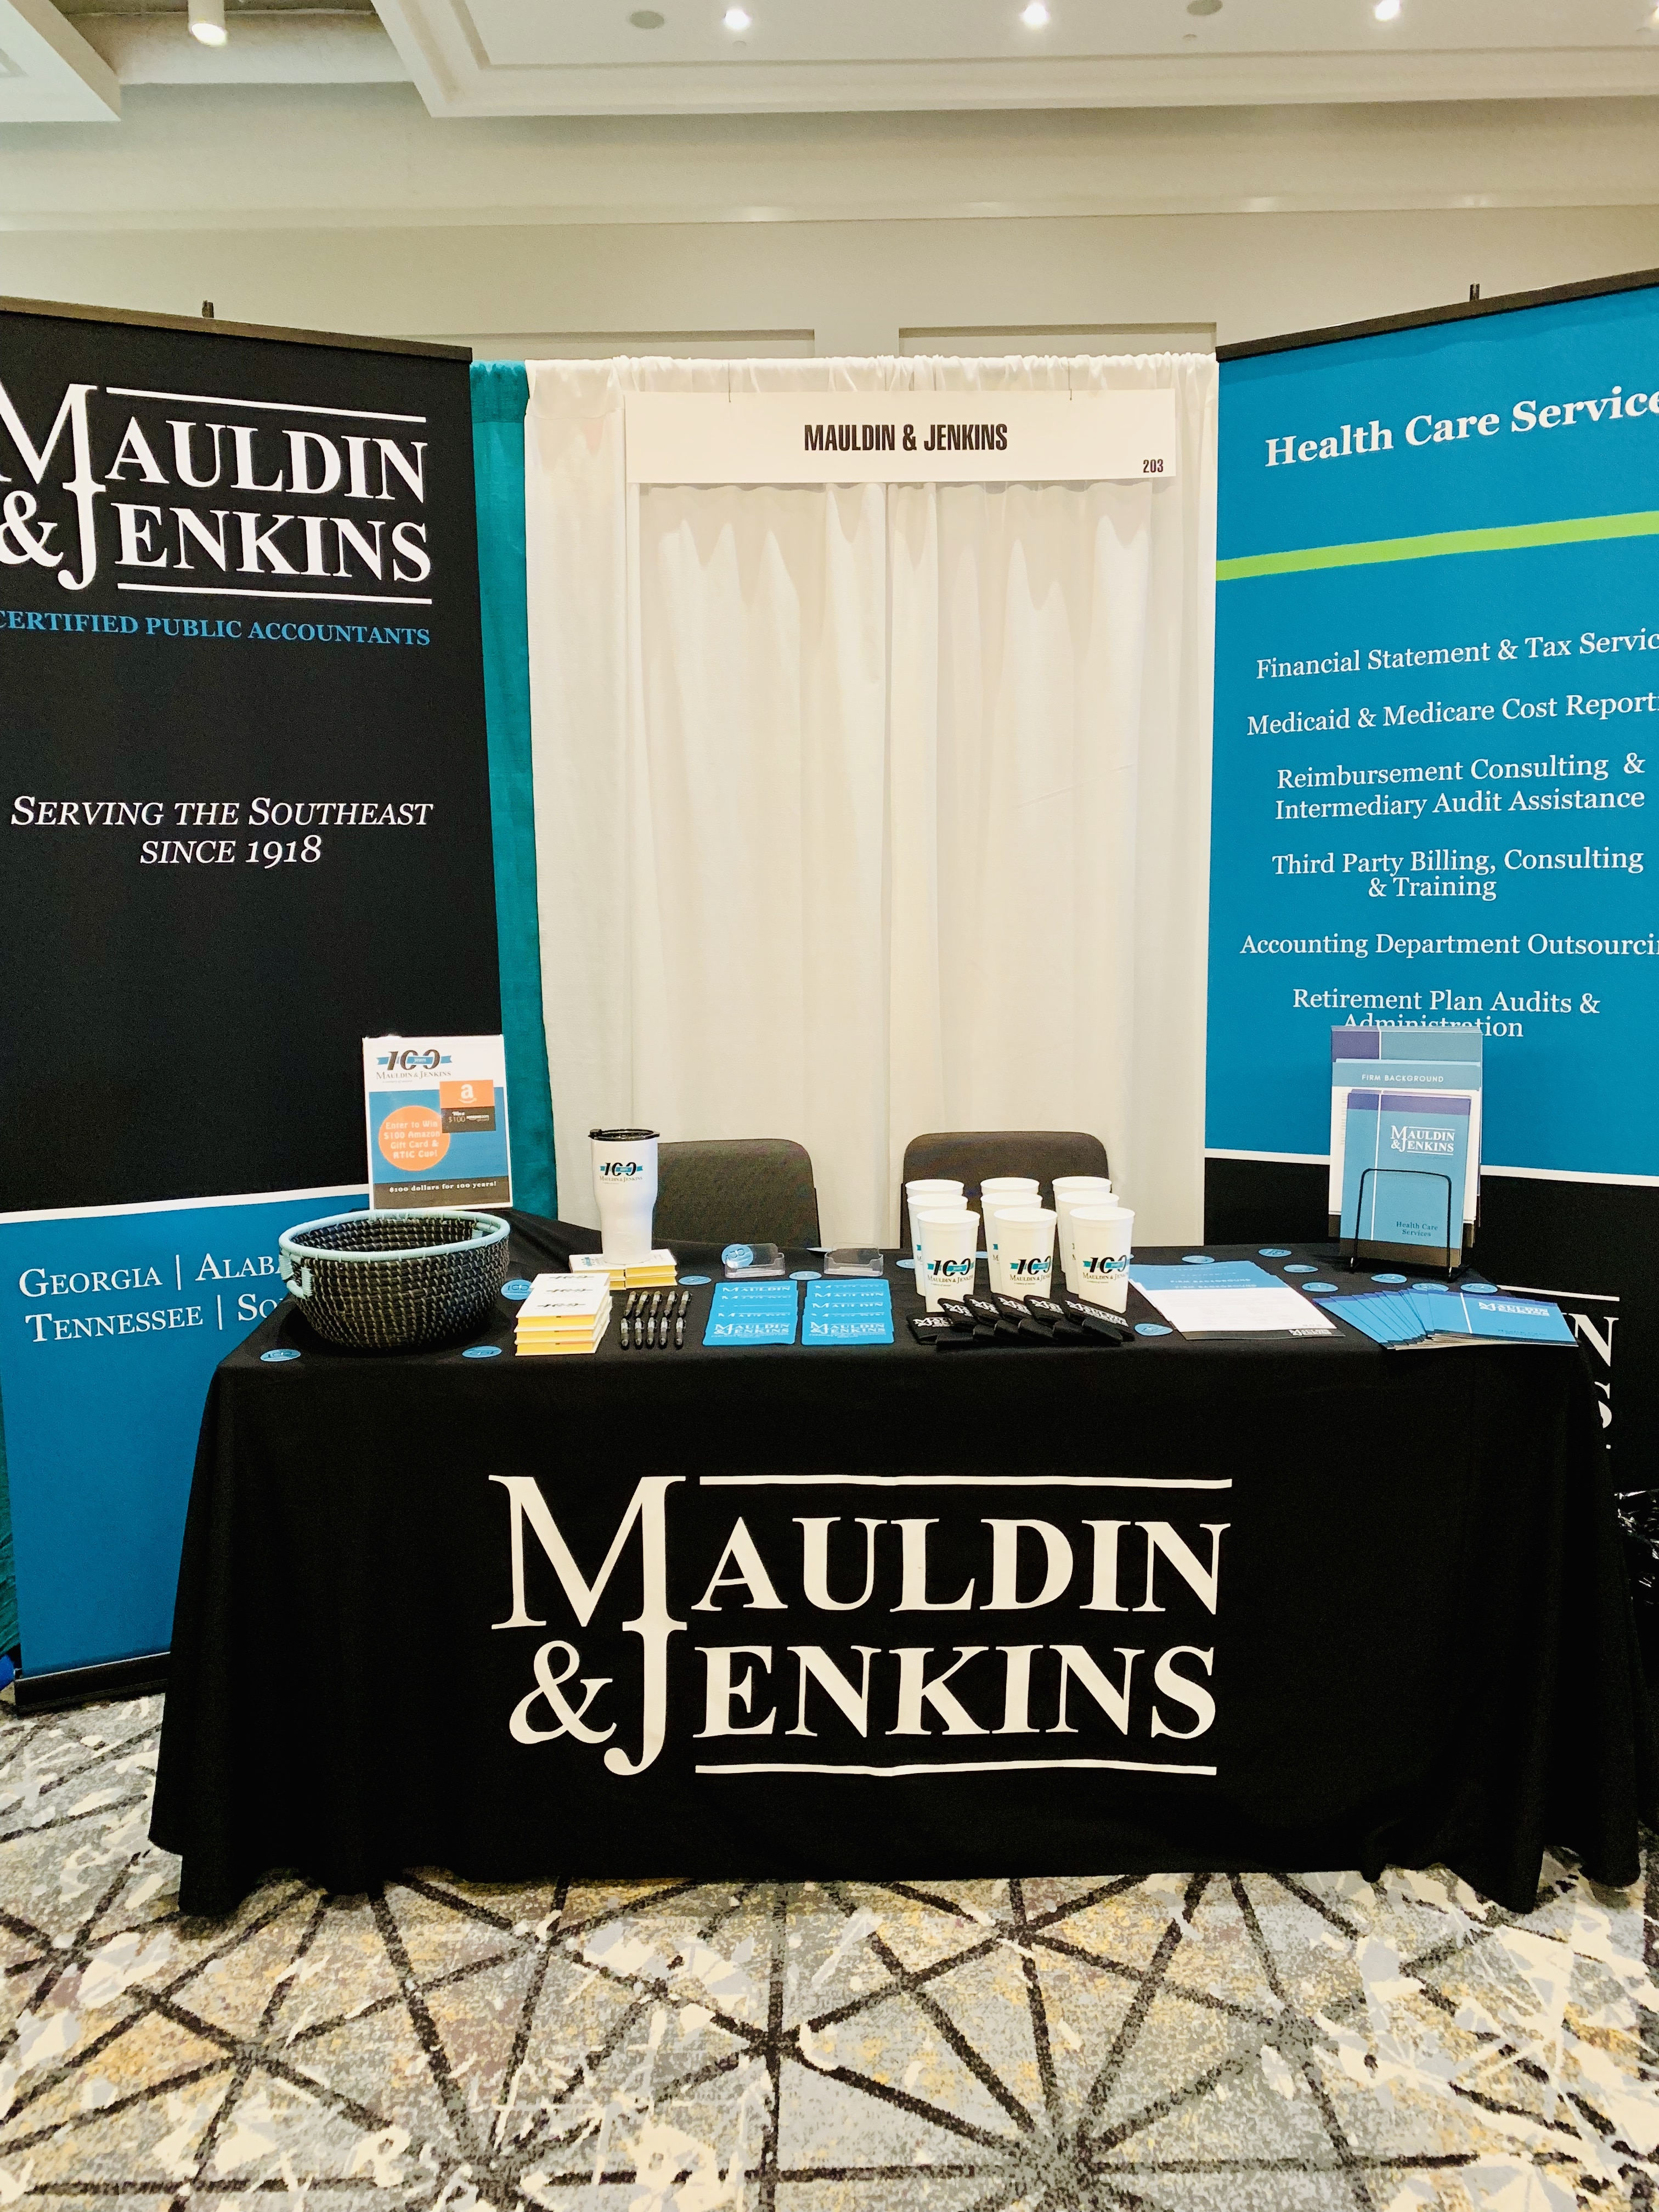 Mauldin & Jenkins Exhibits at GHCA/GCAL winter convention and trade show